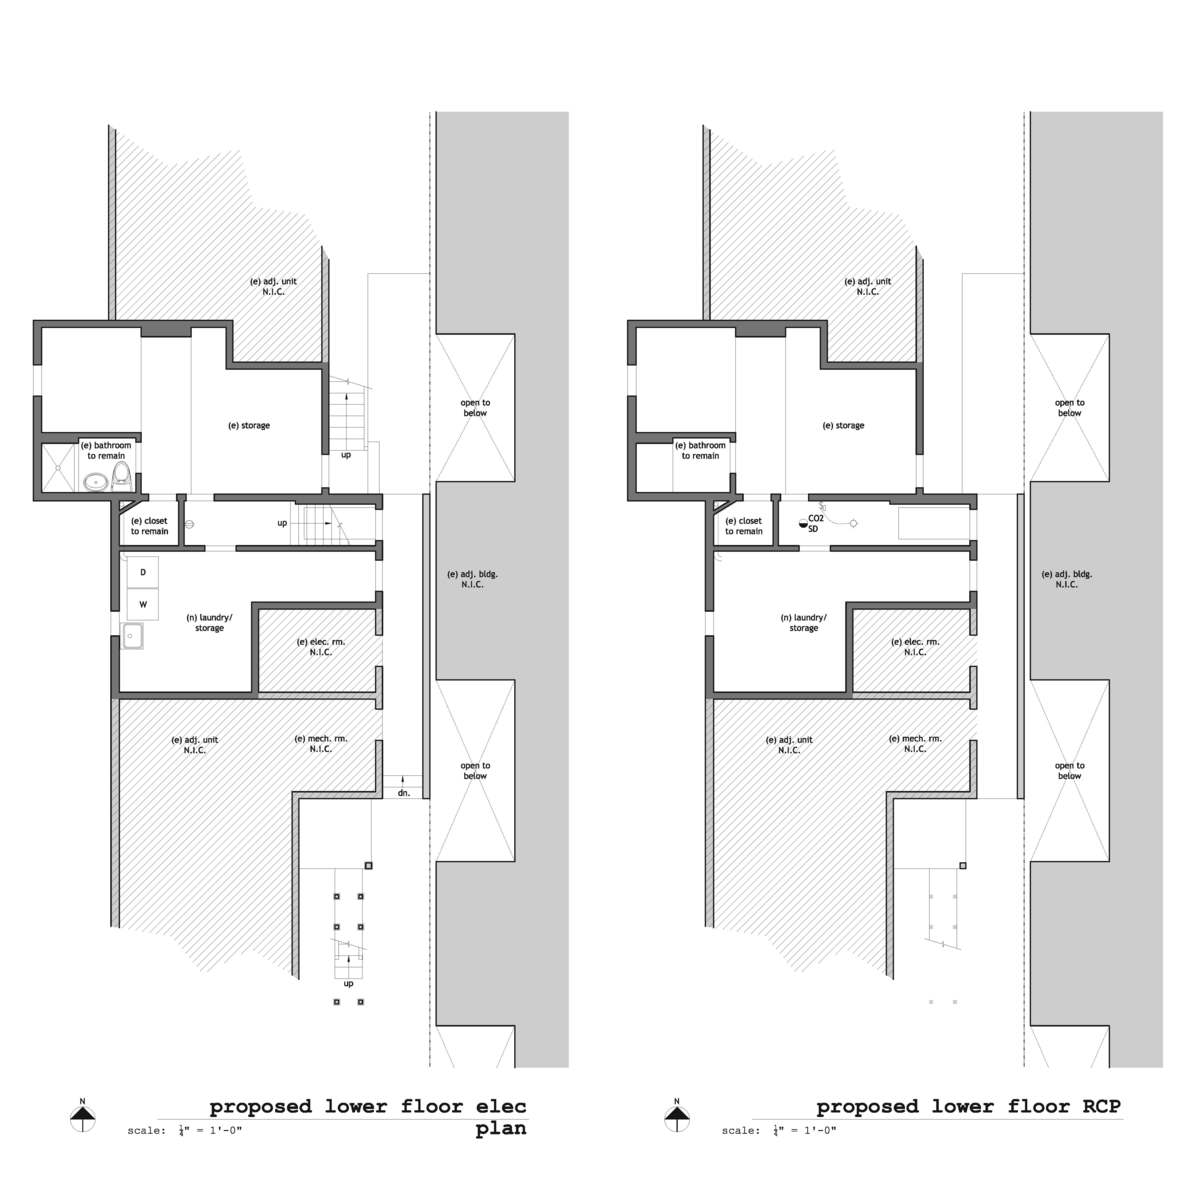 Existing & Proposed Lower Floor RCP